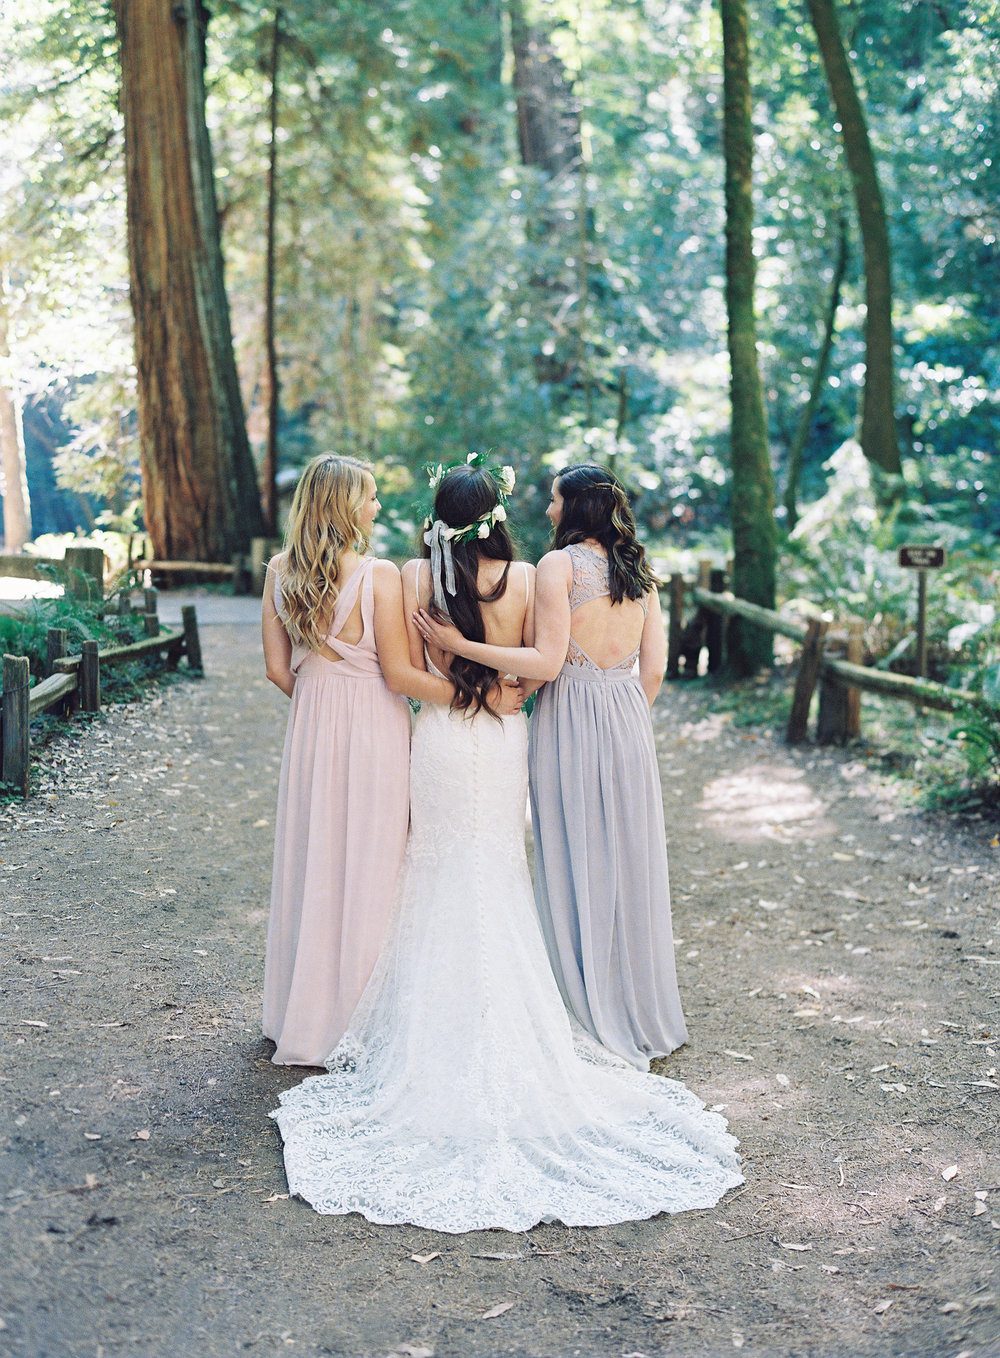 Meghan Mehan Photography | California Wedding Photographer | Napa California Wedding Photographer 087.jpg